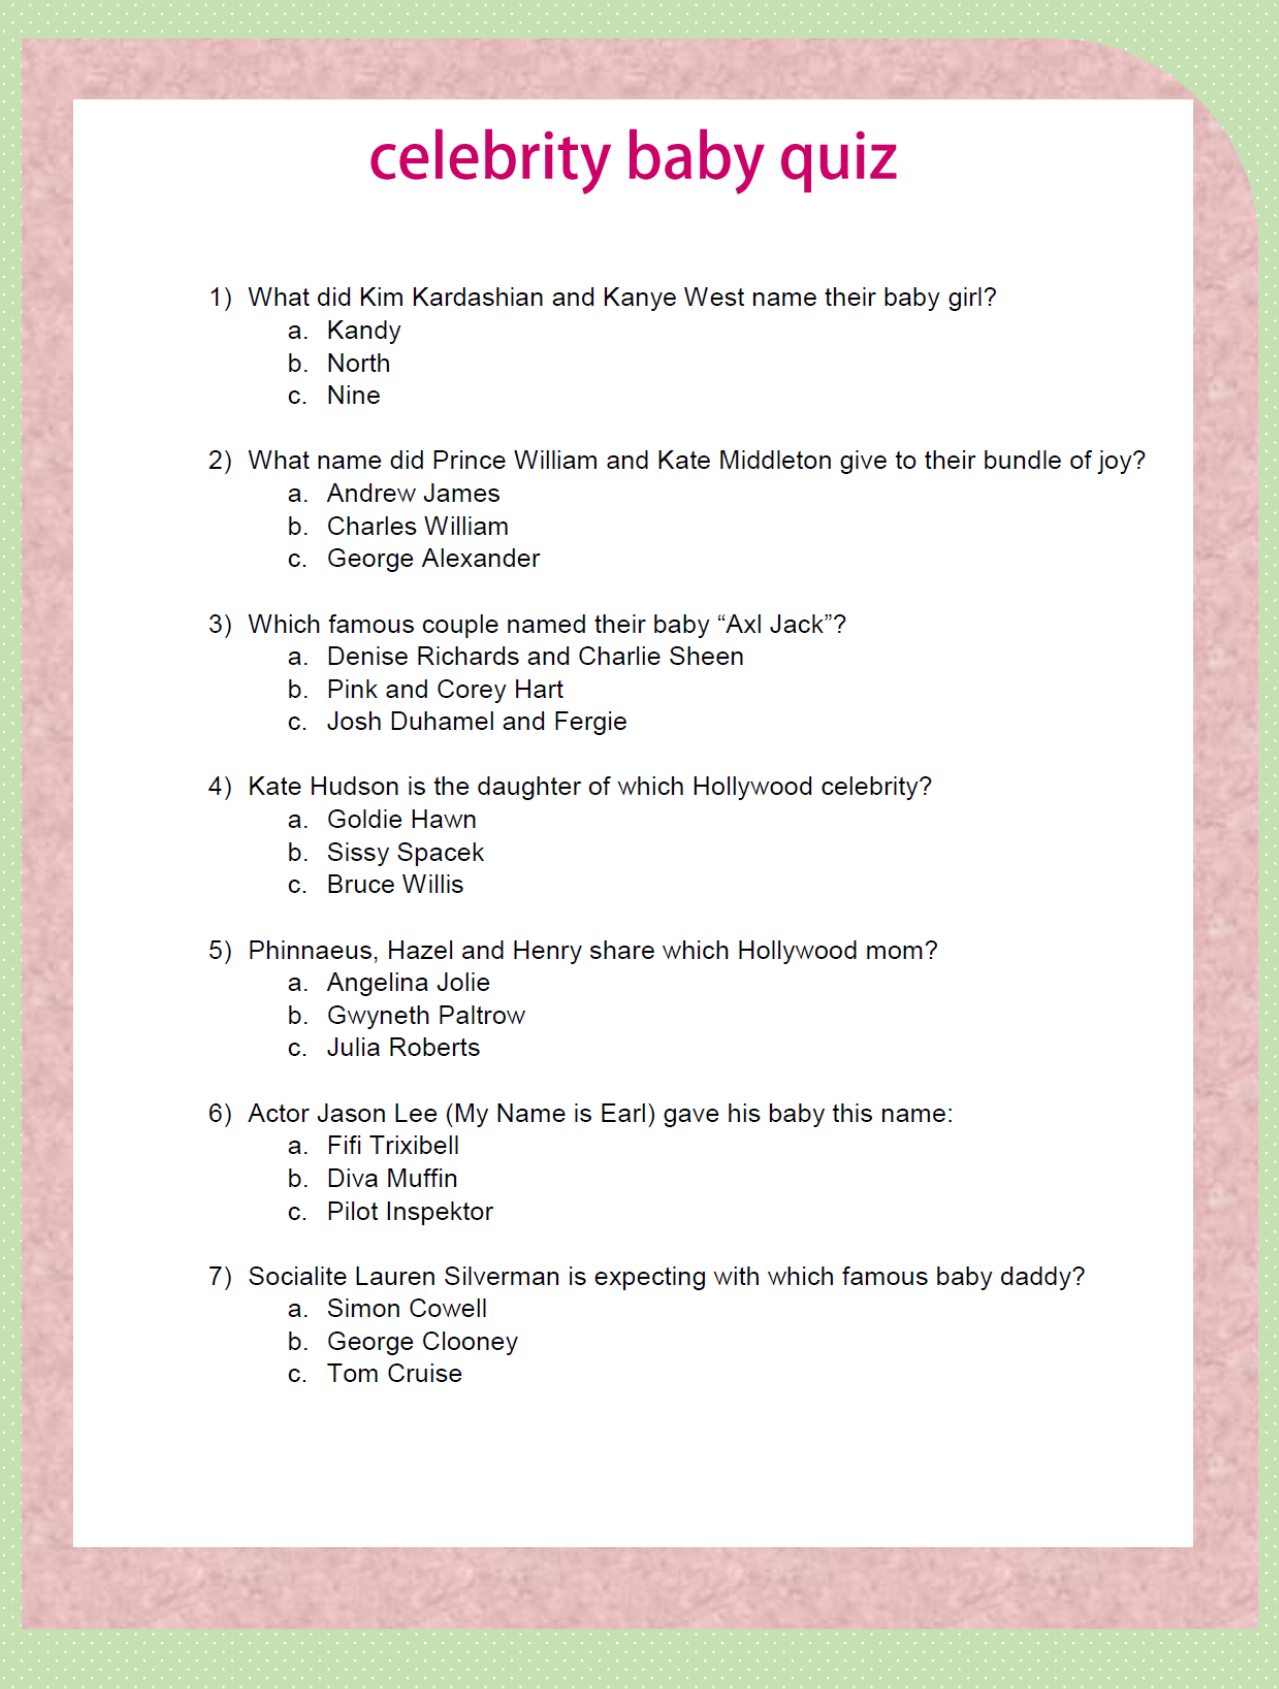 Baby Shower Game Celebrity Baby Quiz 7 Questions About